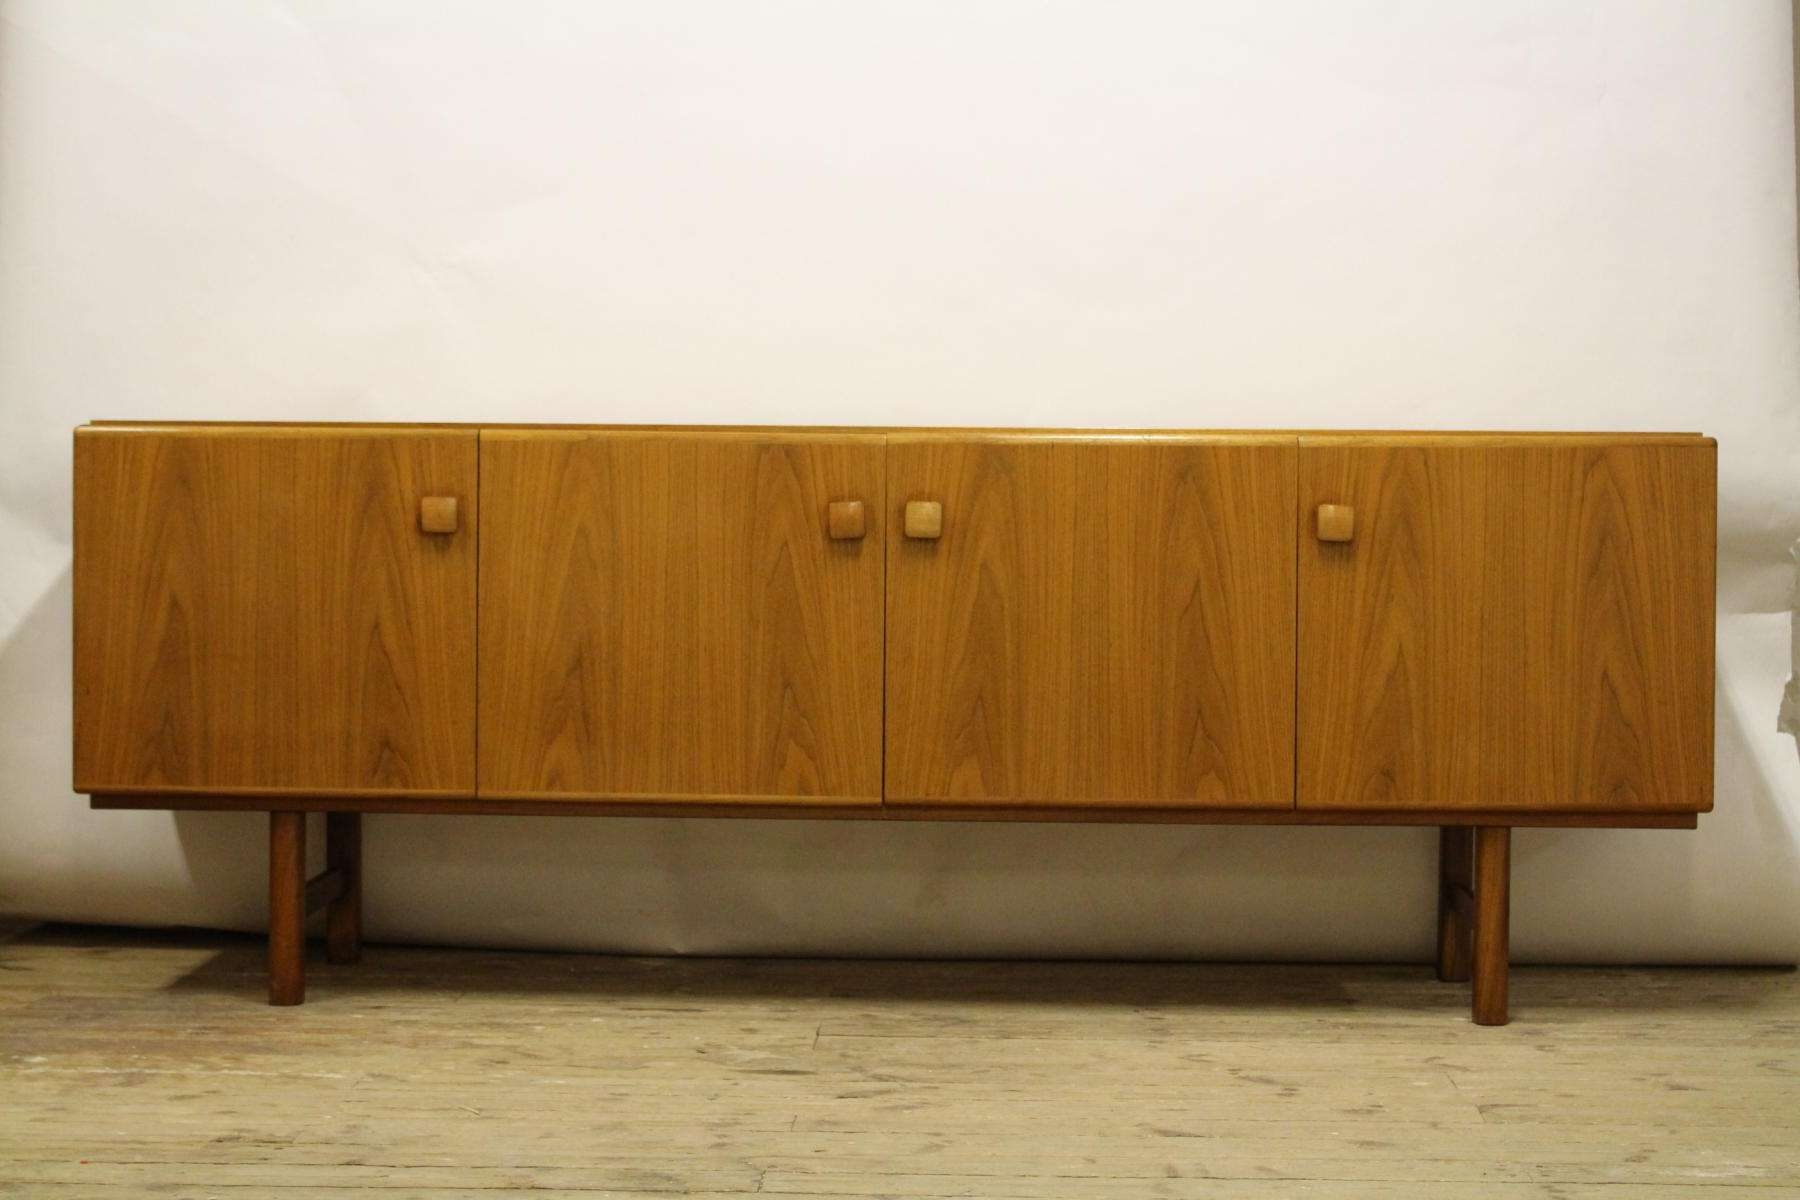 Swedish Walnut Sideboard From Ab Carlsson, 1960s For Sale At Pamono Throughout Walnut Sideboards (View 13 of 20)